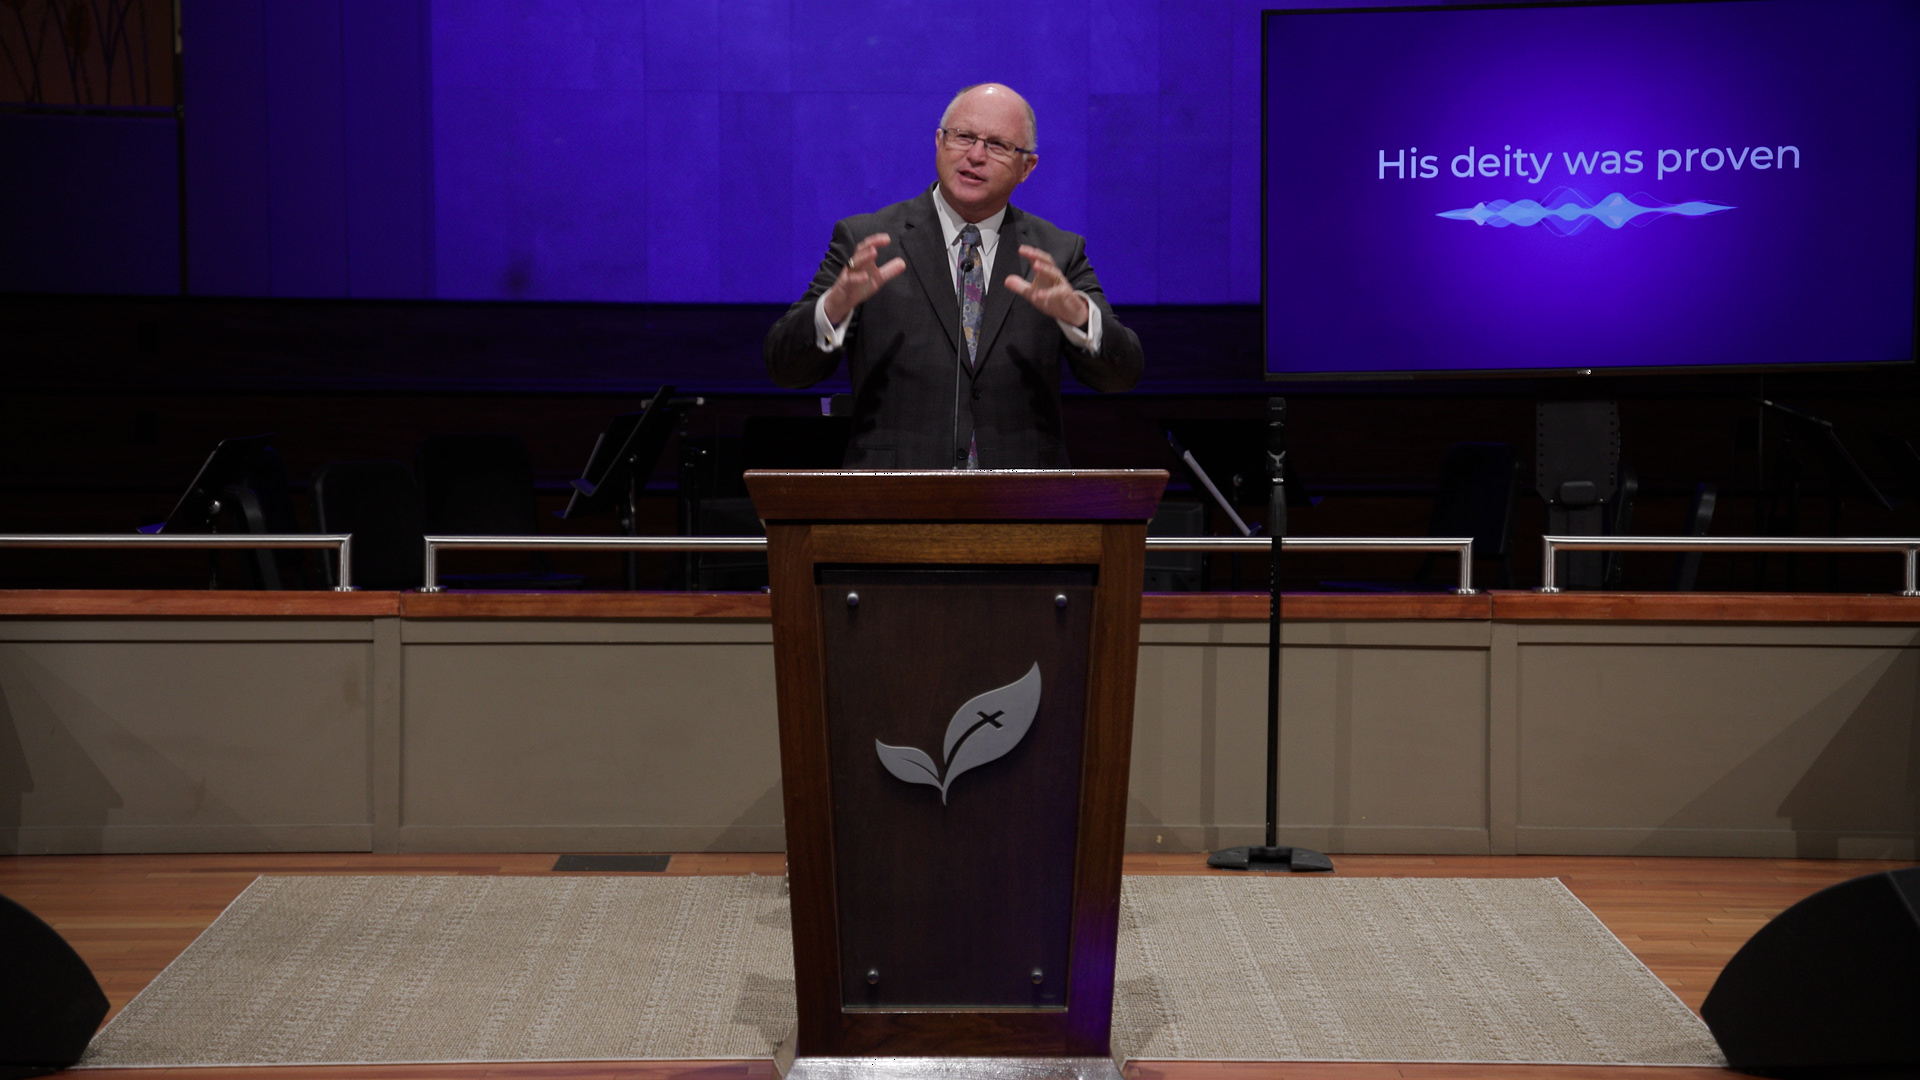 Pastor Paul Chappell: The Declaration of Peter